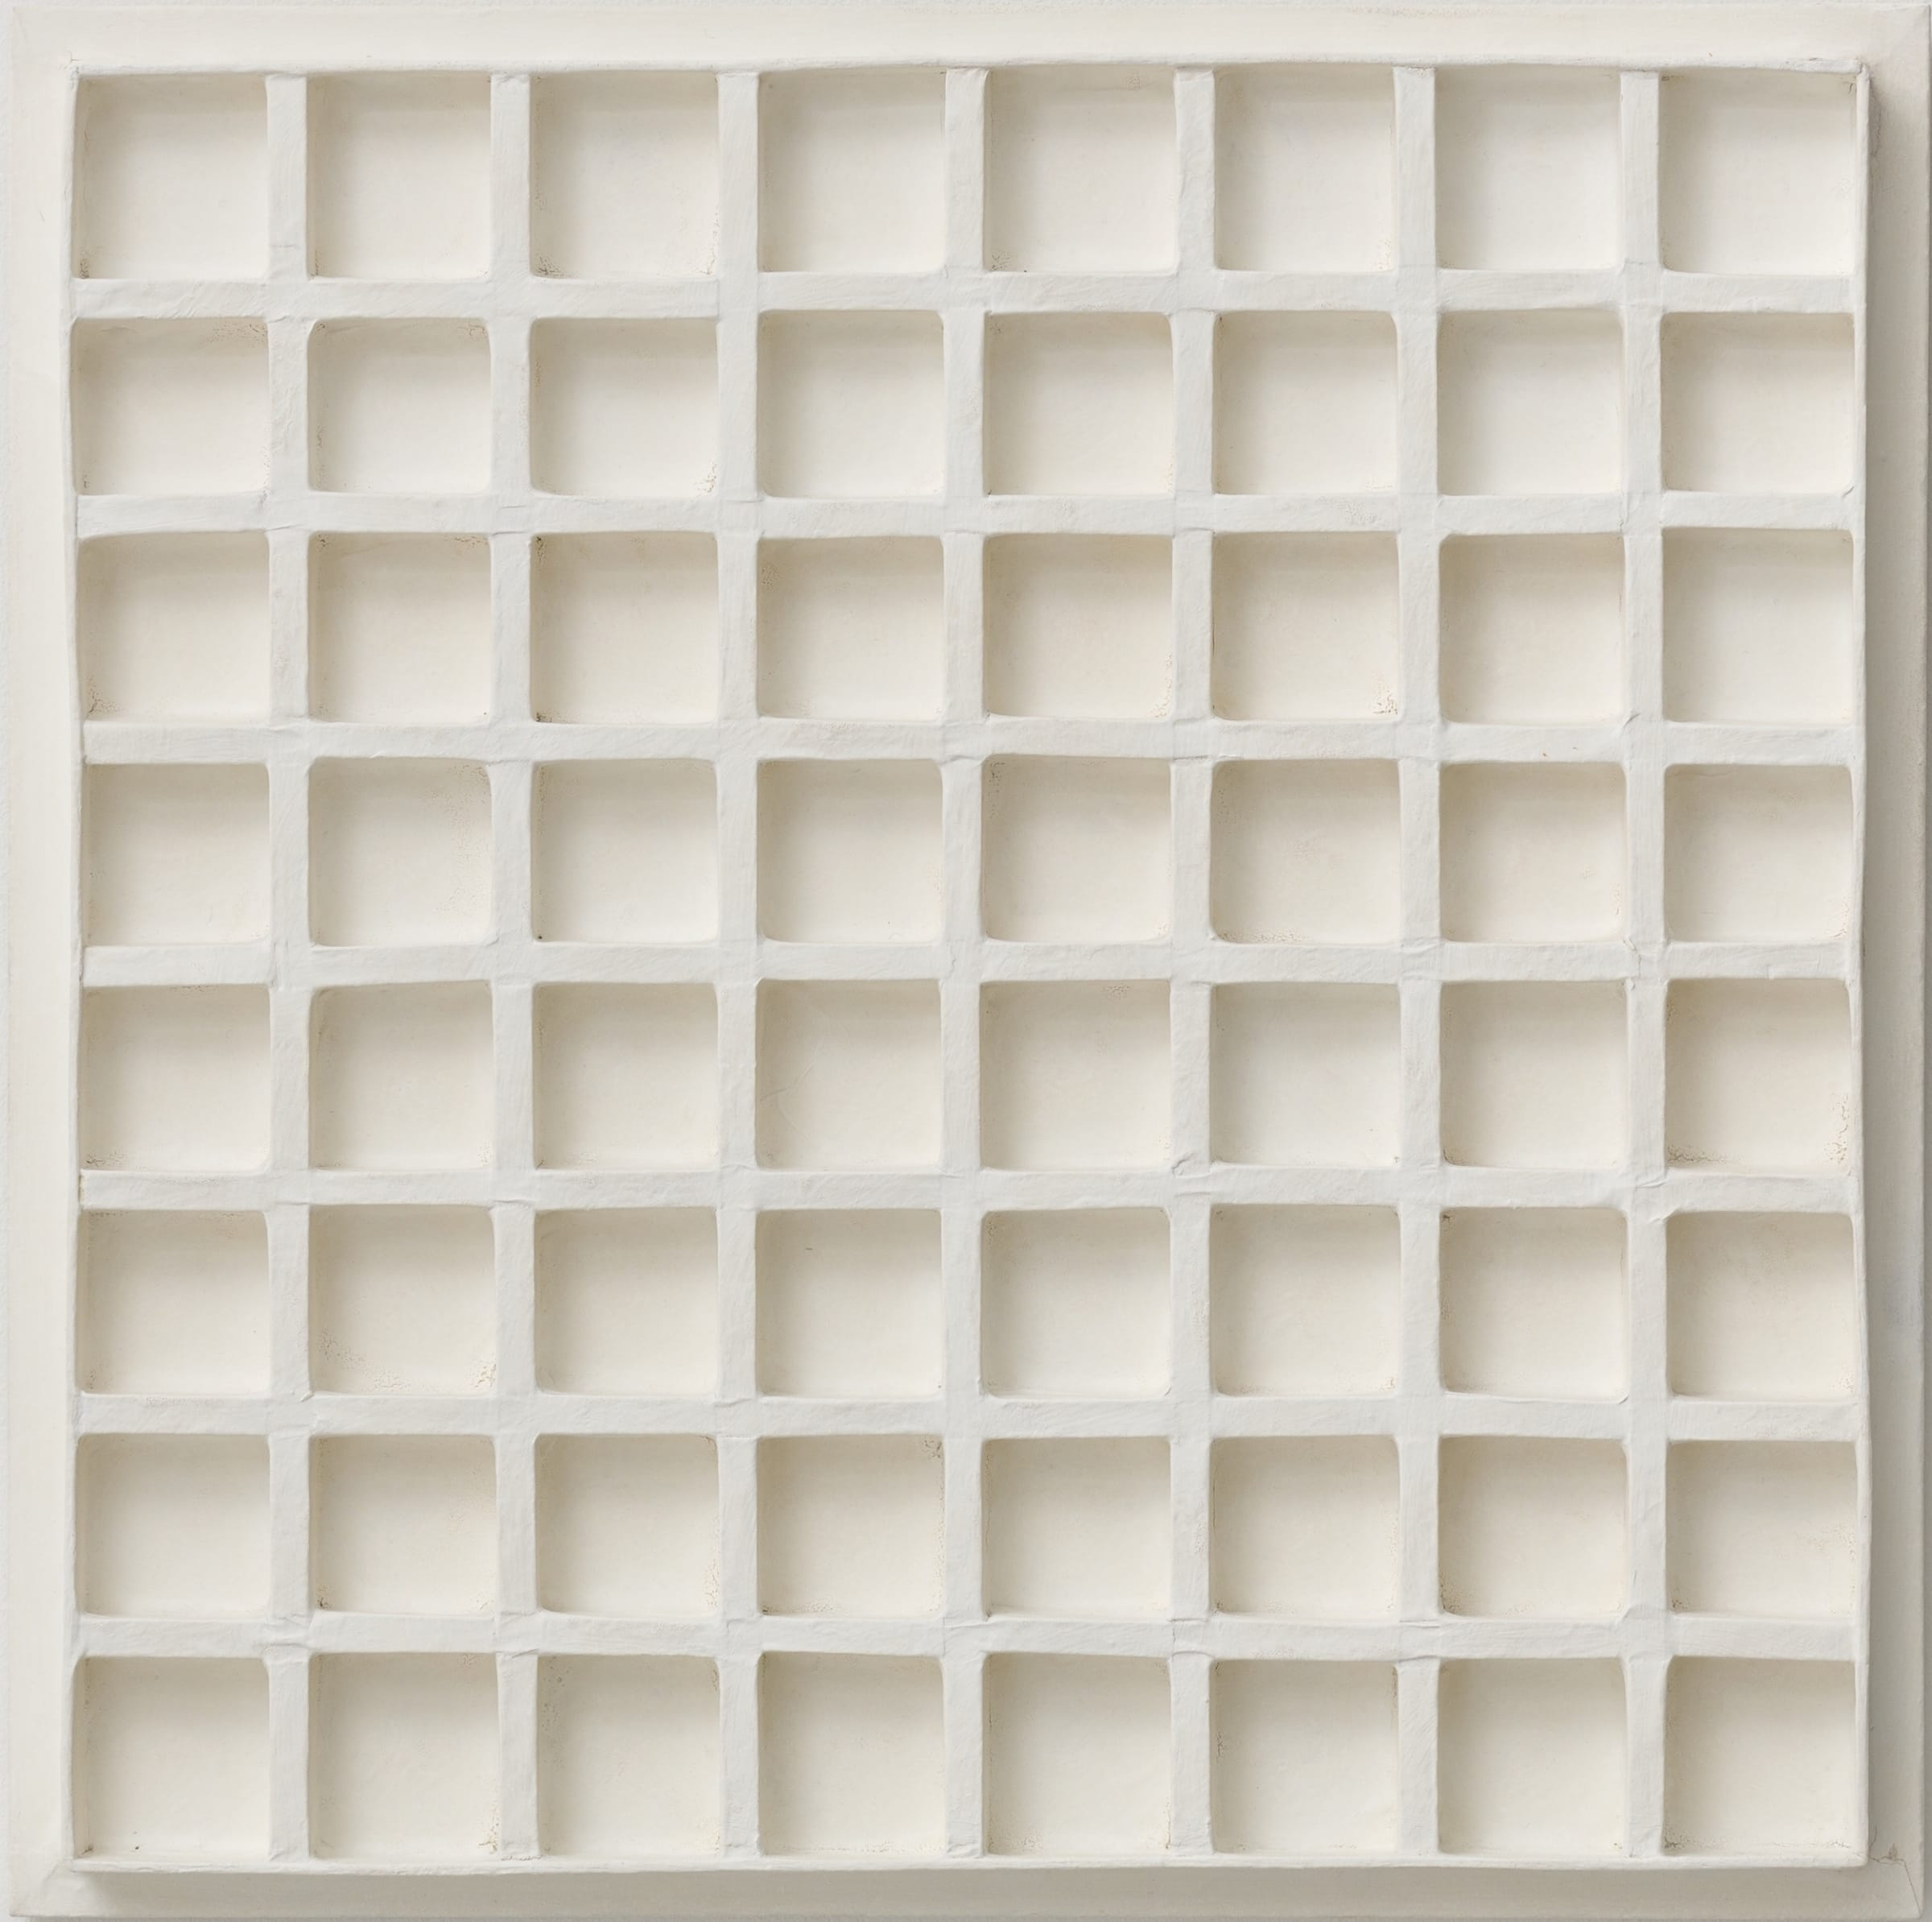 "<span class=""link fancybox-details-link""><a href=""/artists/100-jan-schoonhoven/works/11089-jan-schoonhoven-r-72-34-1972/"">View Detail Page</a></span><div class=""artist""><span class=""artist""><strong>JAN SCHOONHOVEN</strong></span></div>